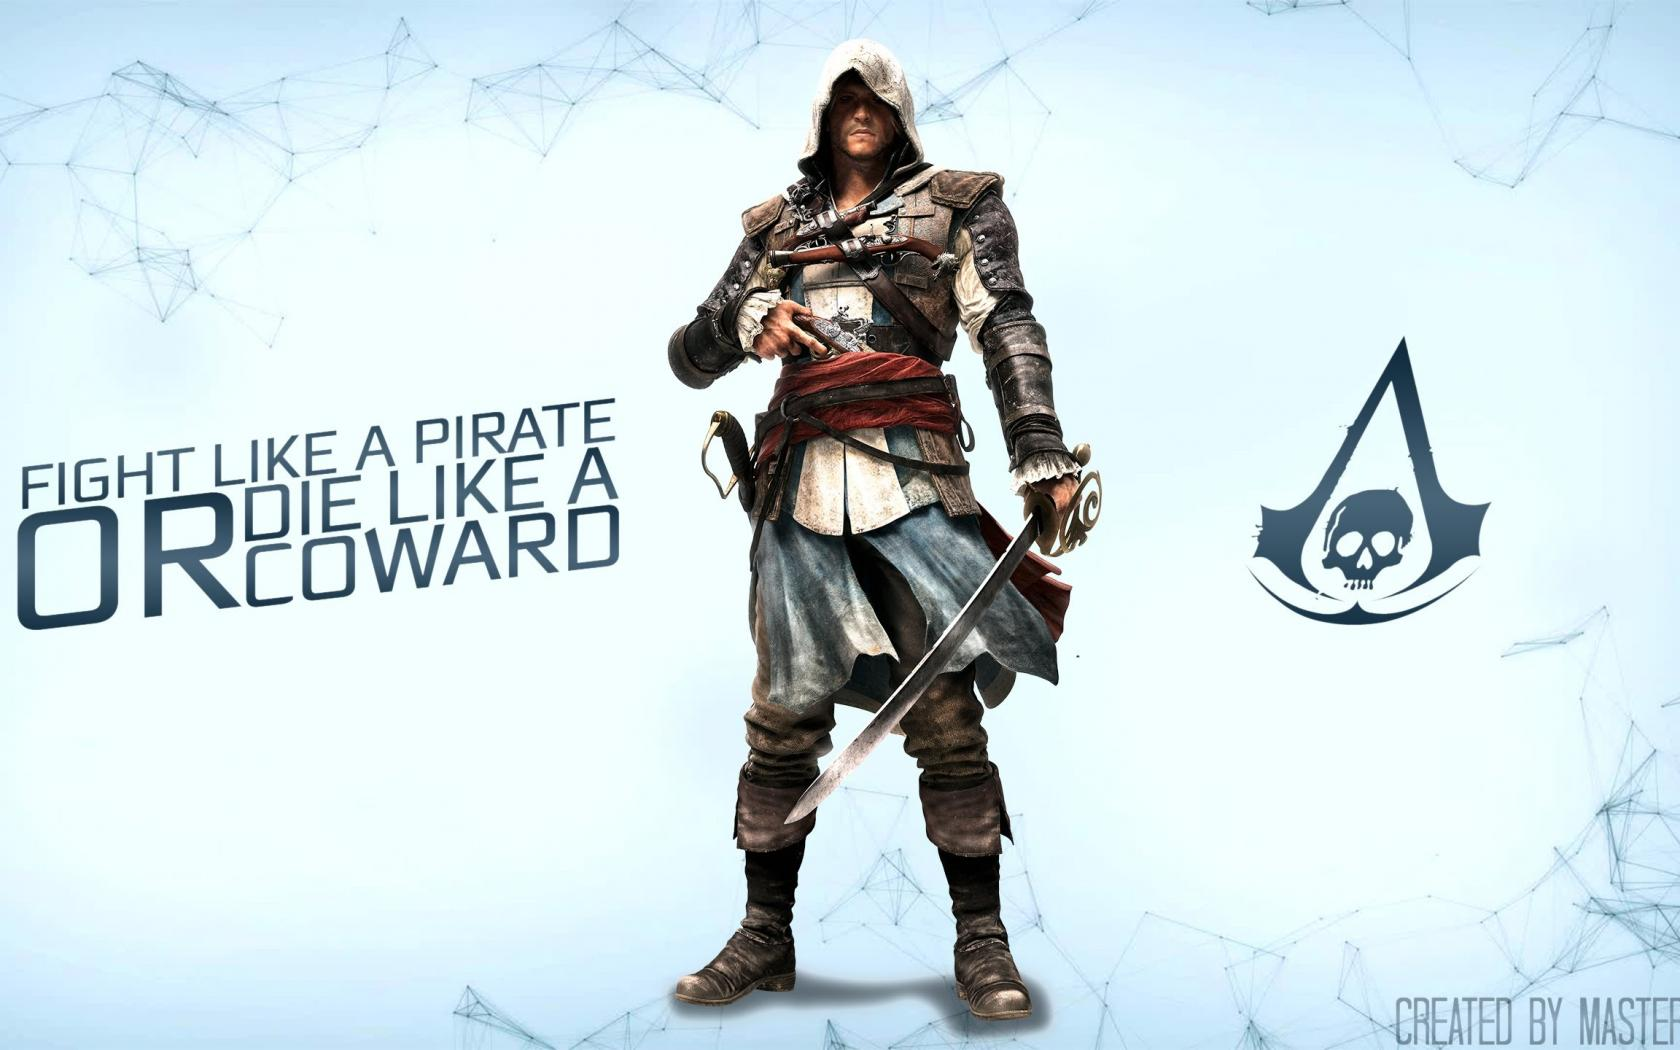 Free Assassins Creed Quotes For Desktop Wallpaper Hd Wallpapers